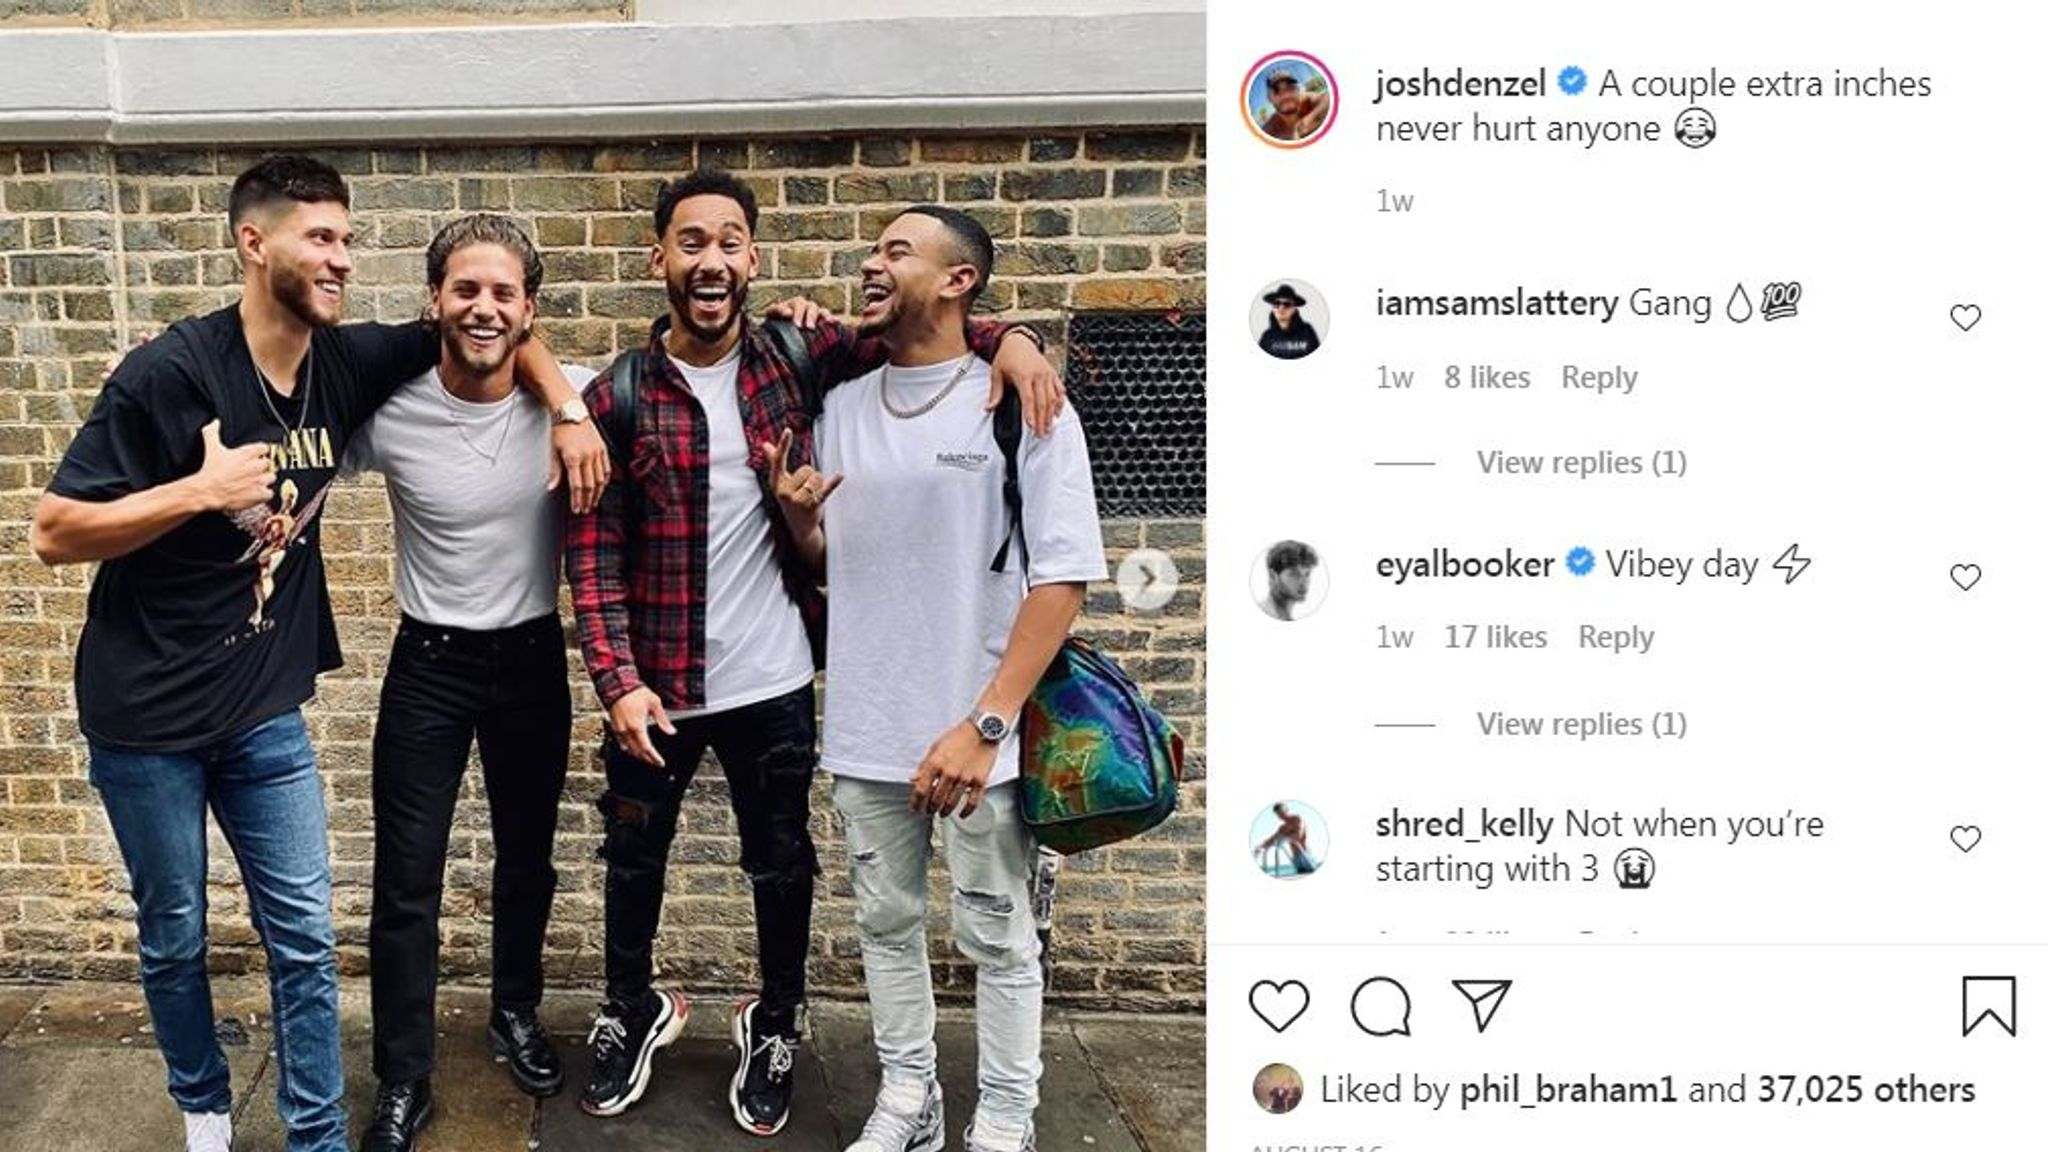 The reality TV star's next post was him hugging friends and saying 'a couple extra inches never hurt anyone'. Pic: Instagram/Josh Denzel